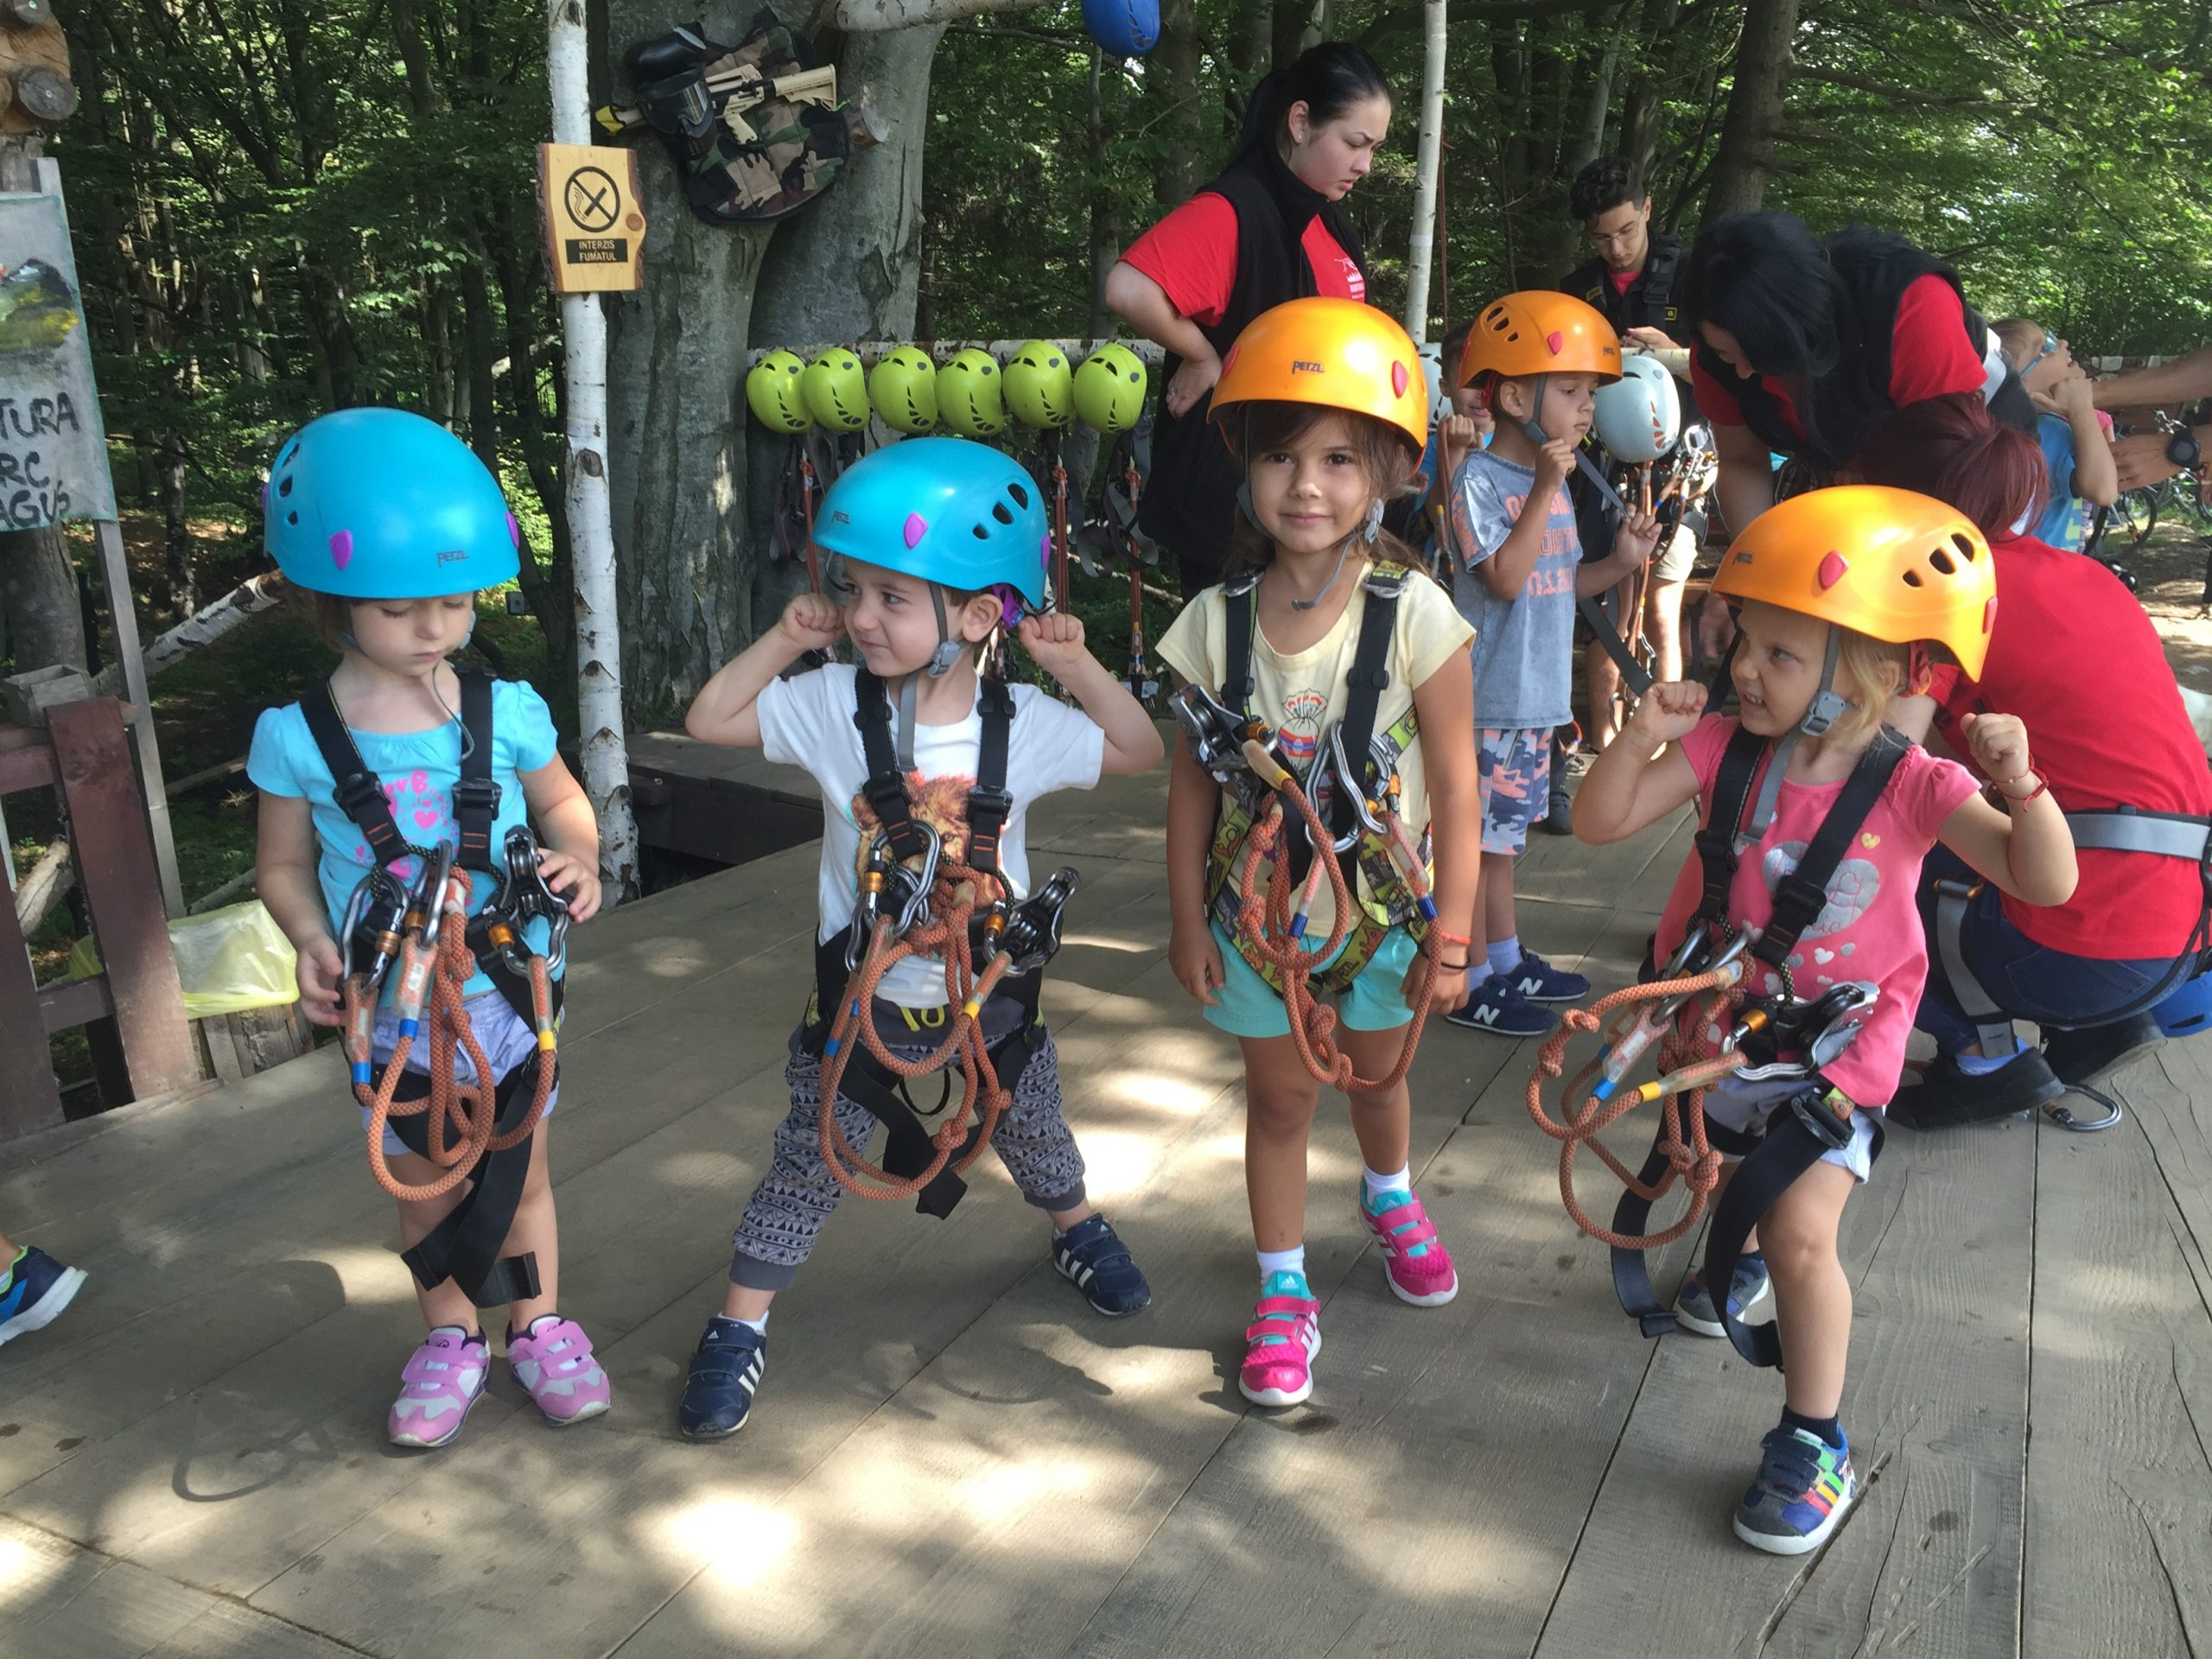 https://camps4kids.ro/wp-content/uploads/2016/10/IMG_8886-scaled.jpg